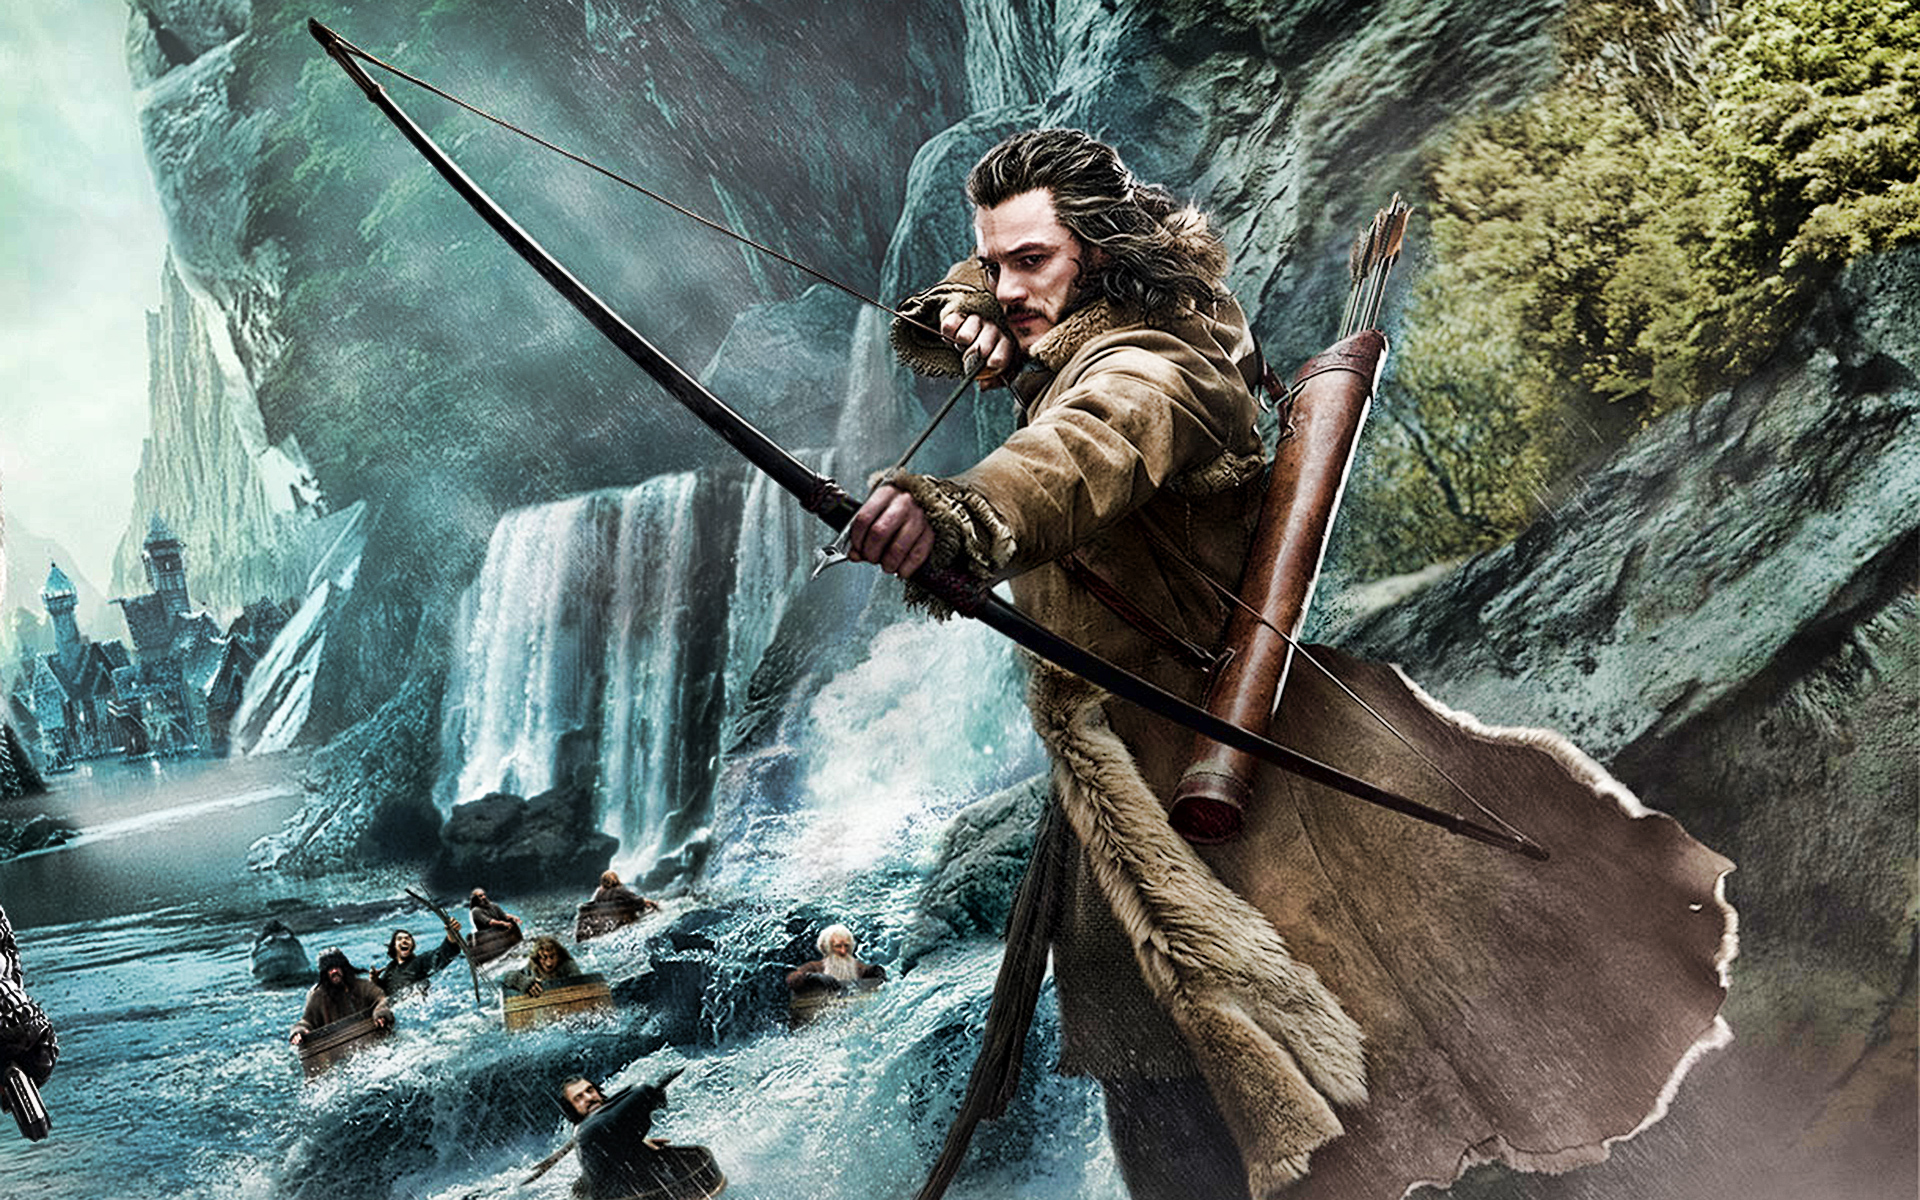 The Hobbit Desolation Of Smaug 2013 Backgrounds